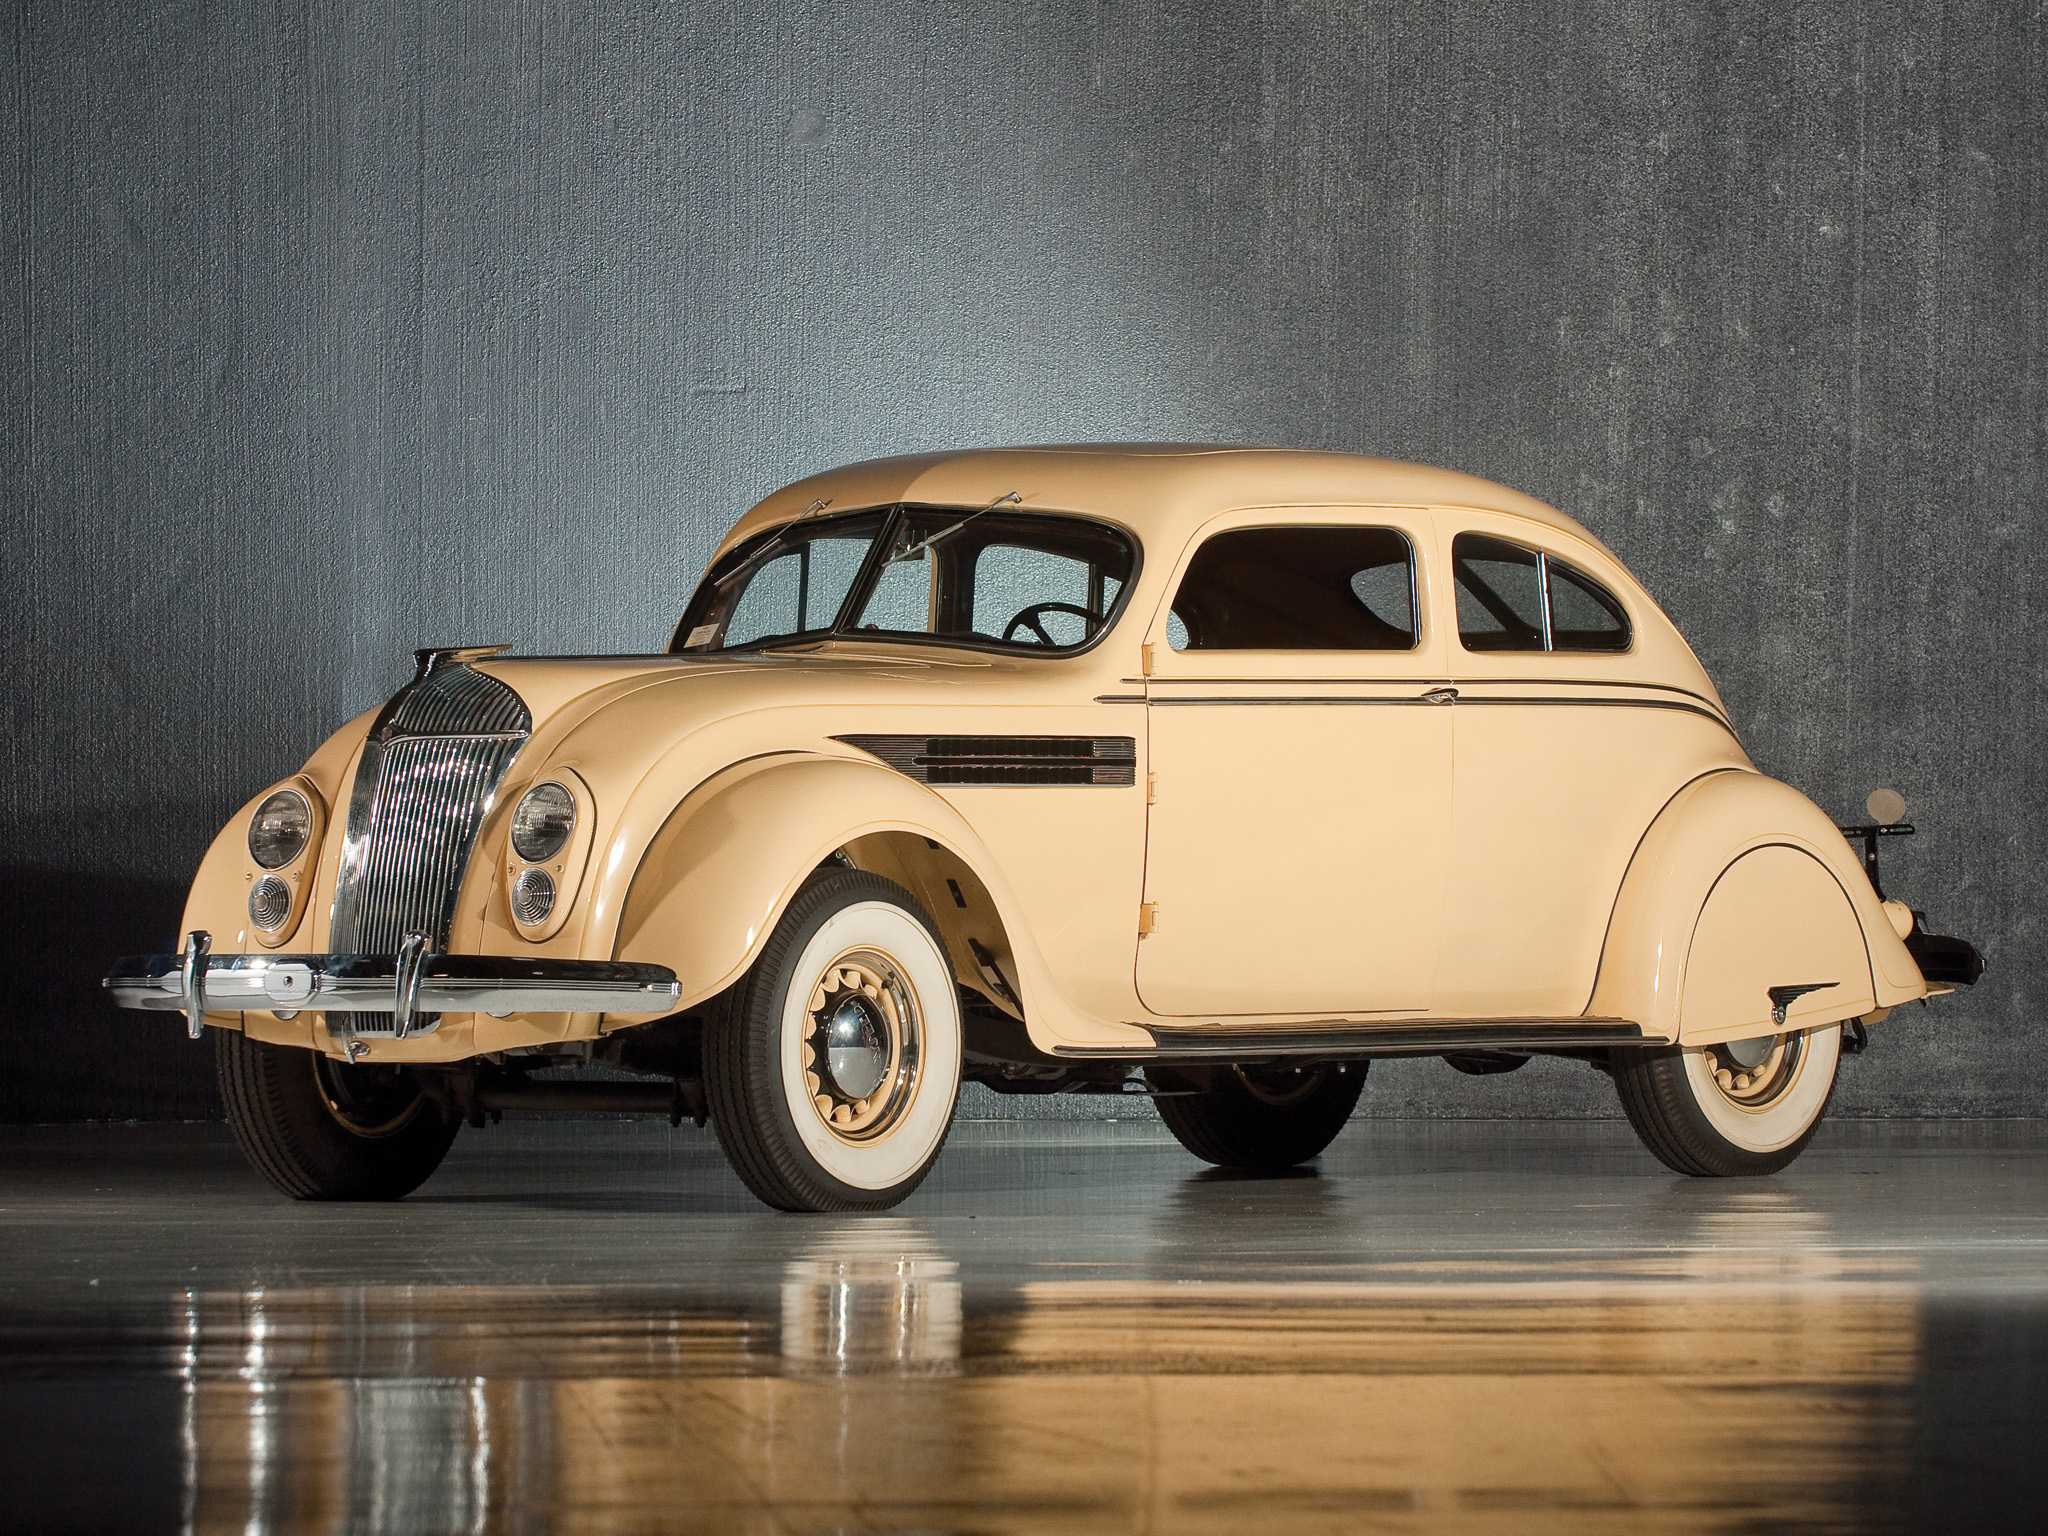 Chrysler Airflow photos - PhotoGallery with 18 pics ...